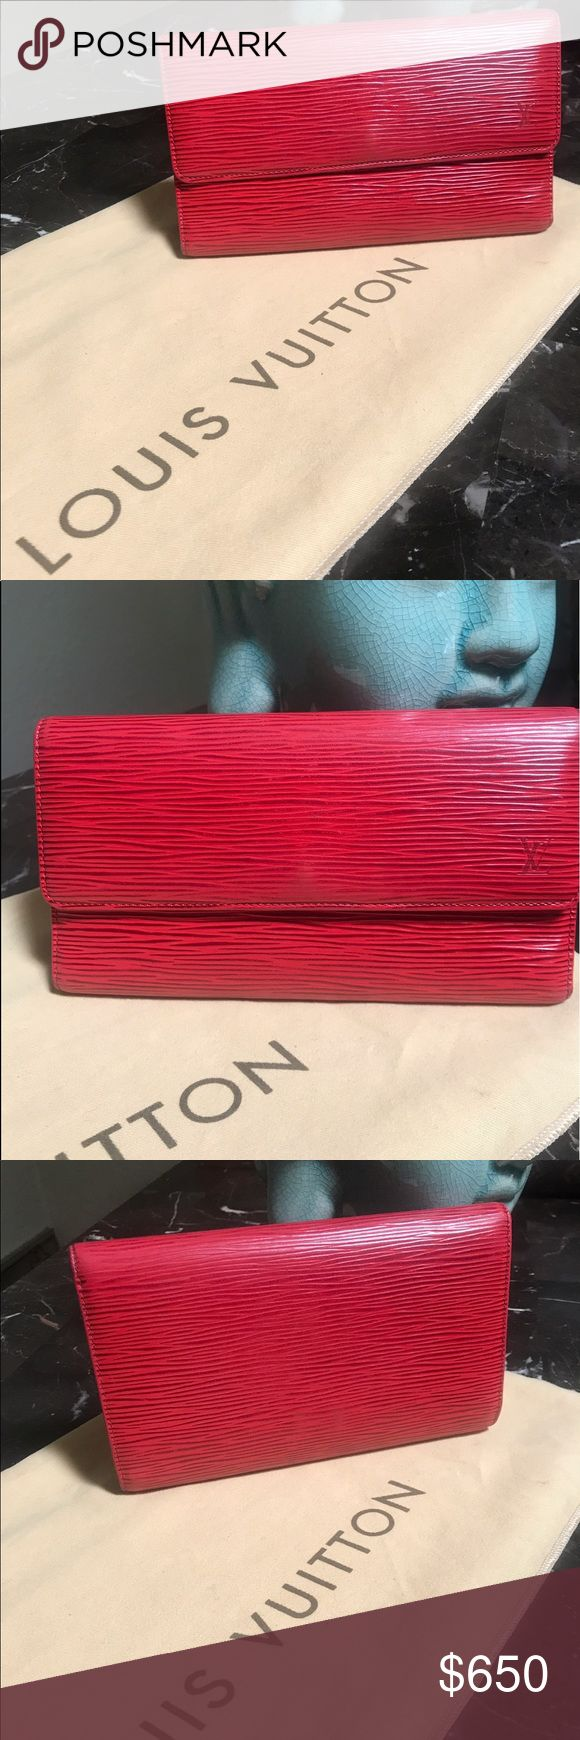 Auth LV Red Epi Leather Porte-Tresor Intern Wallet This LV Toledo Epi Leather Porte-Tresor International Wallet is the most elegant way to organize your essentials like your bills, checkbook, credit cards and plenty of coins. This delightful piece will always be a timeless classic. The exterior Epi is clean and in great condition, but throughout there are very minor signs of wear, as well as slight wear to the corner edges. The interior is clean, but there some scratch marks, coin pouch is…